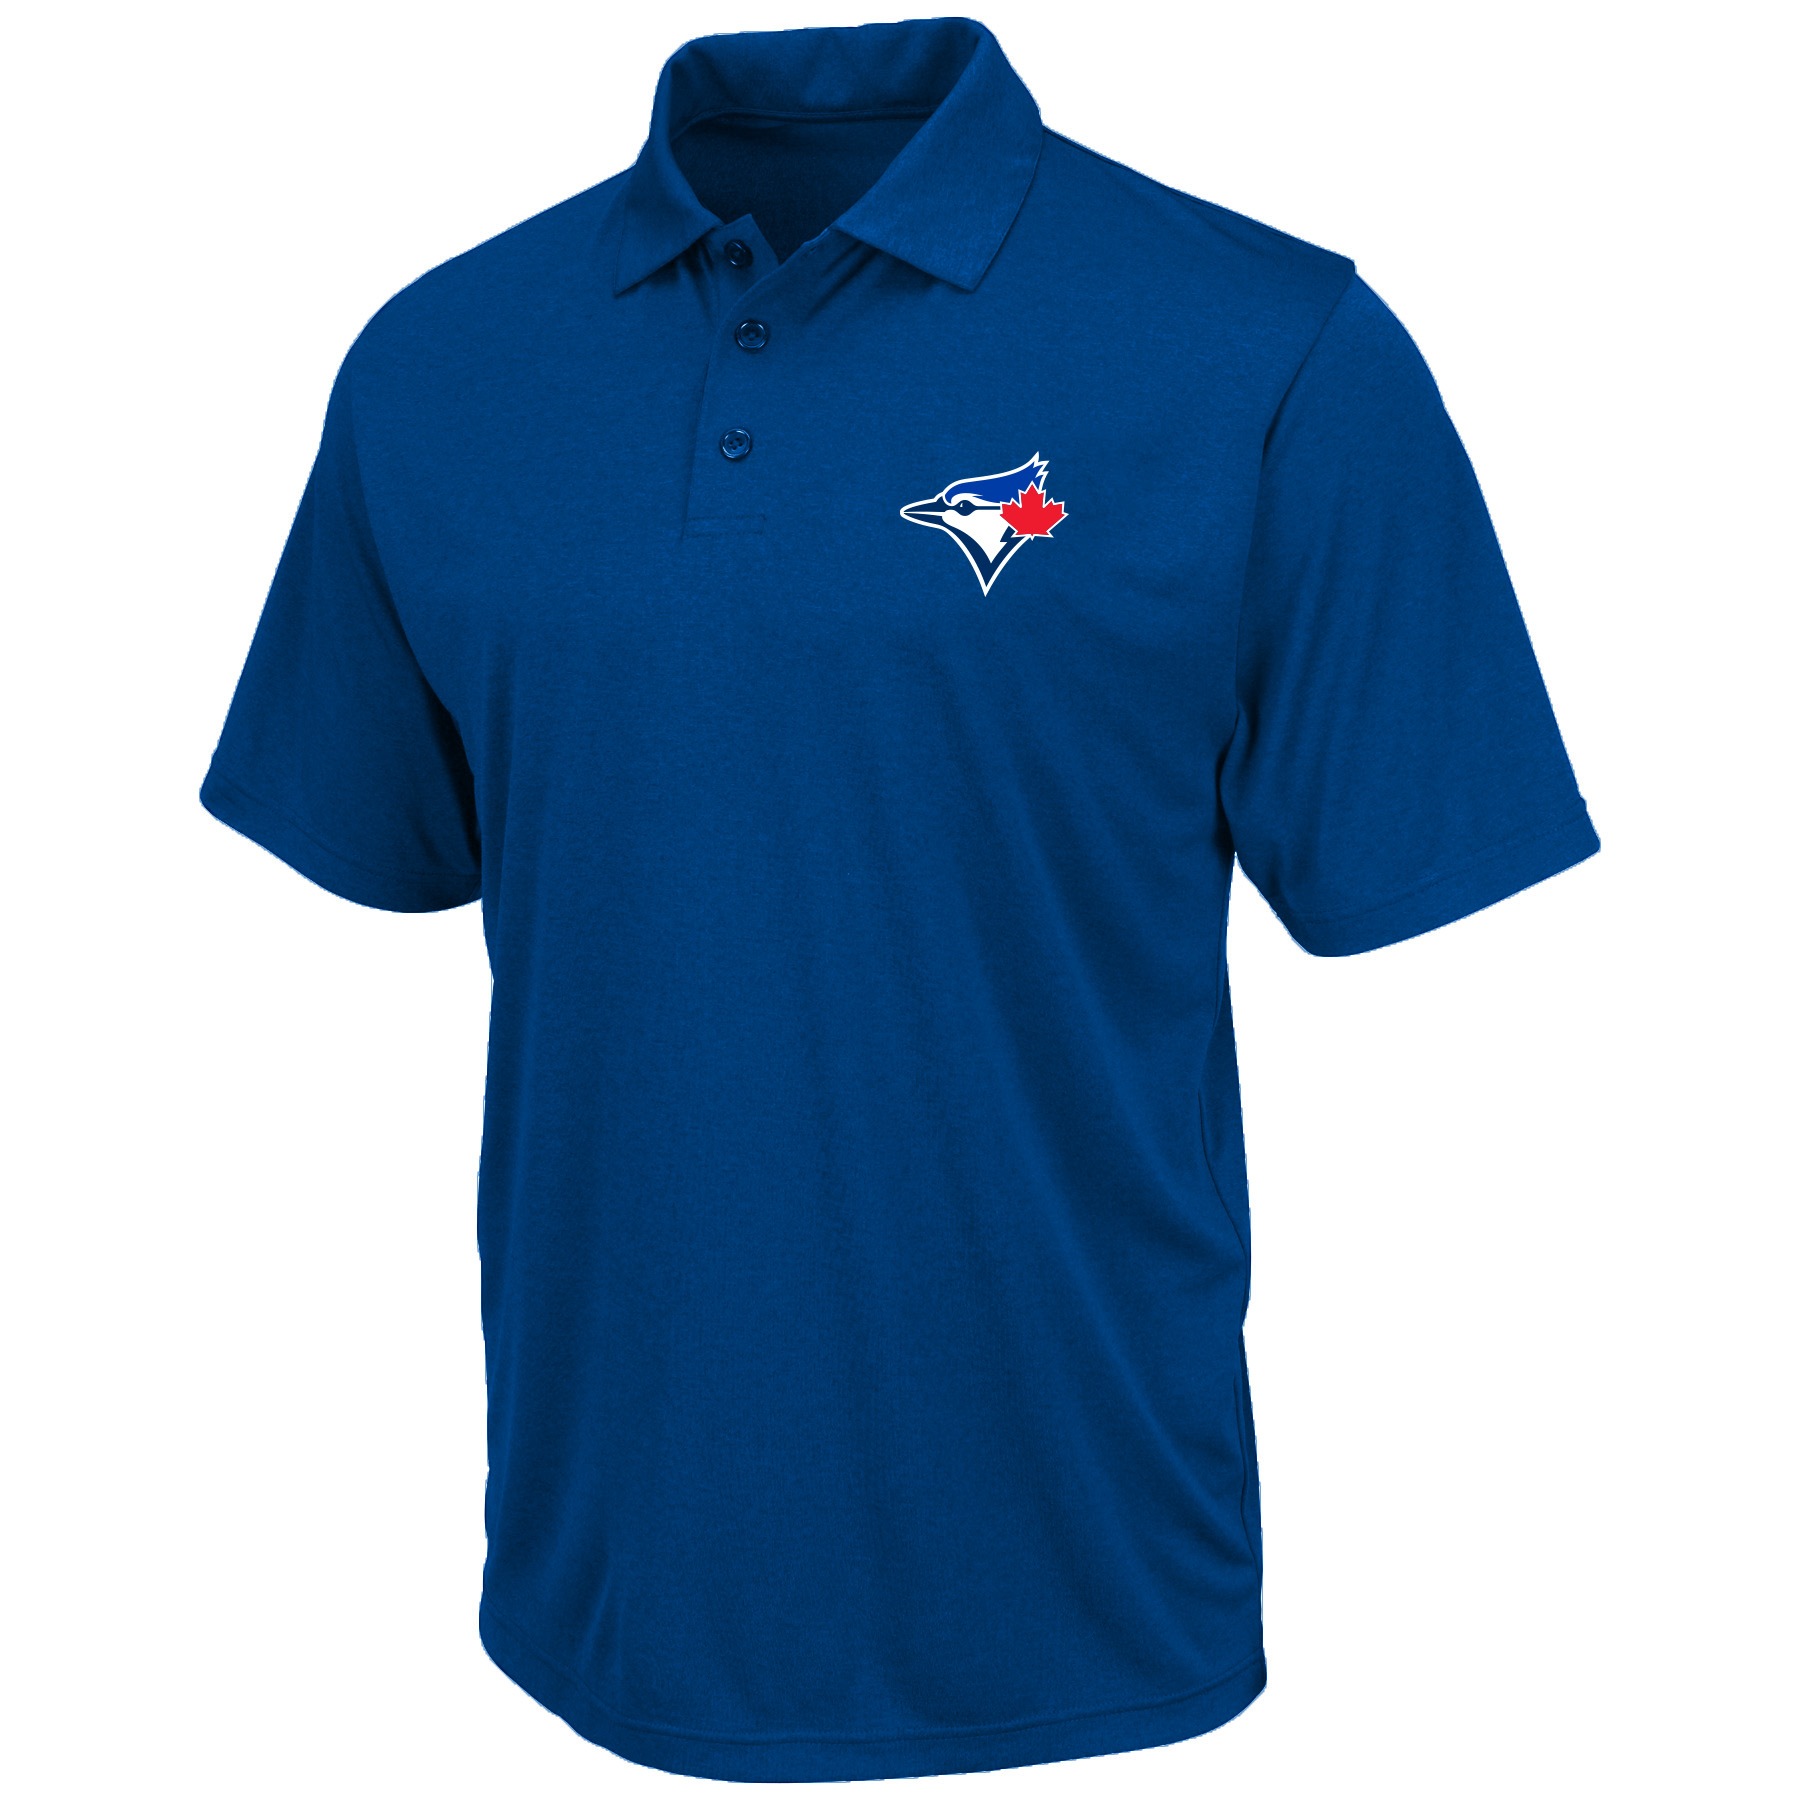 Toronto Blue Jays Majestic Big & Tall Team Birdseye Polo - Royal